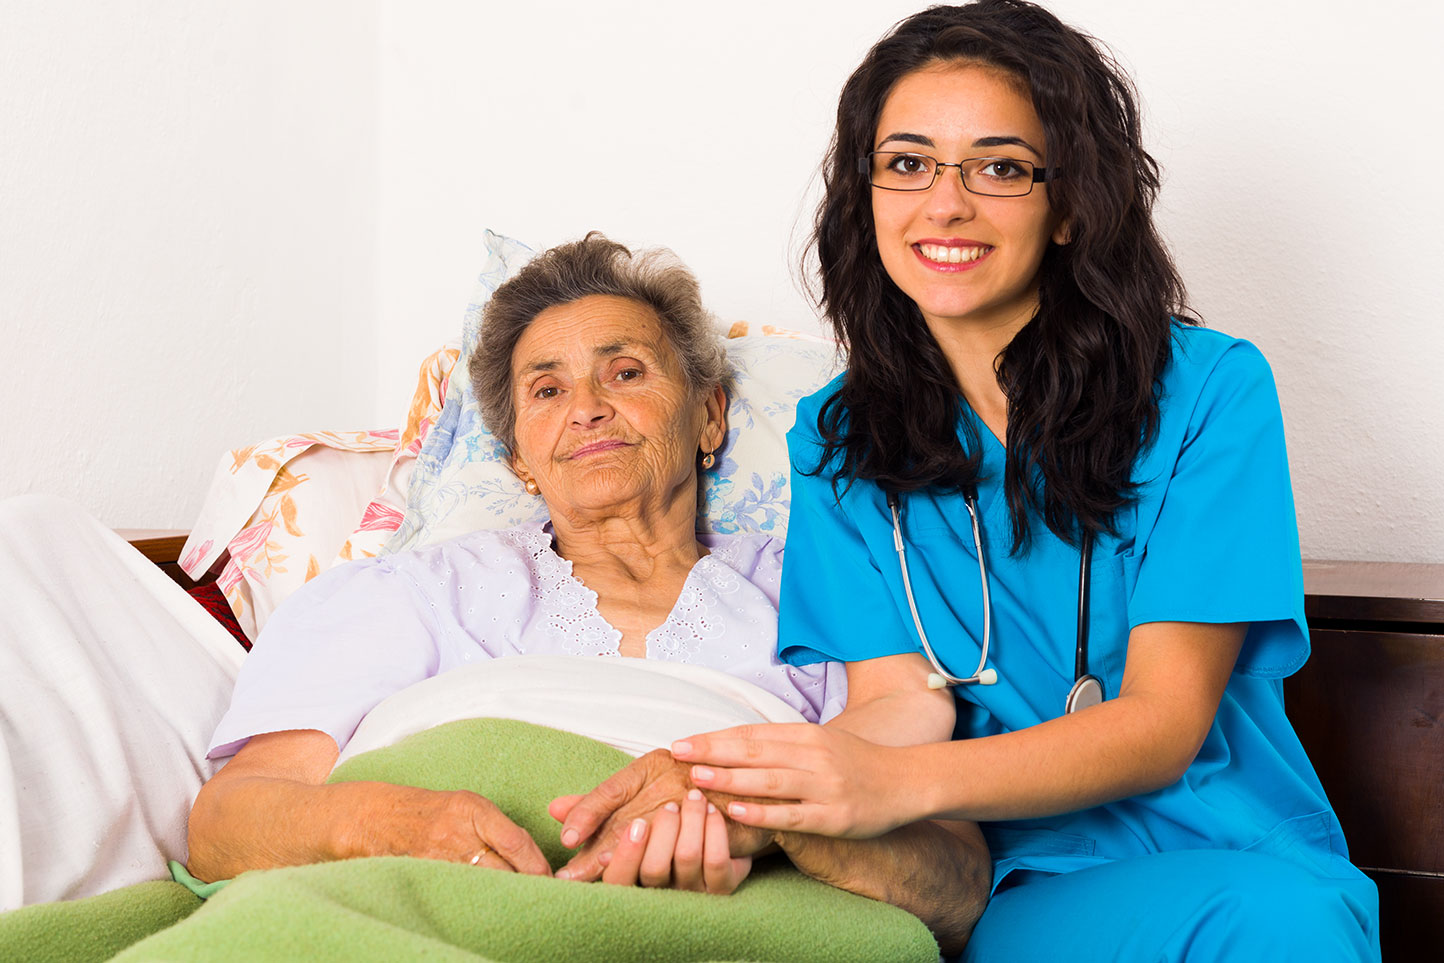 Registered Medical Assistant - McRee Learning Center